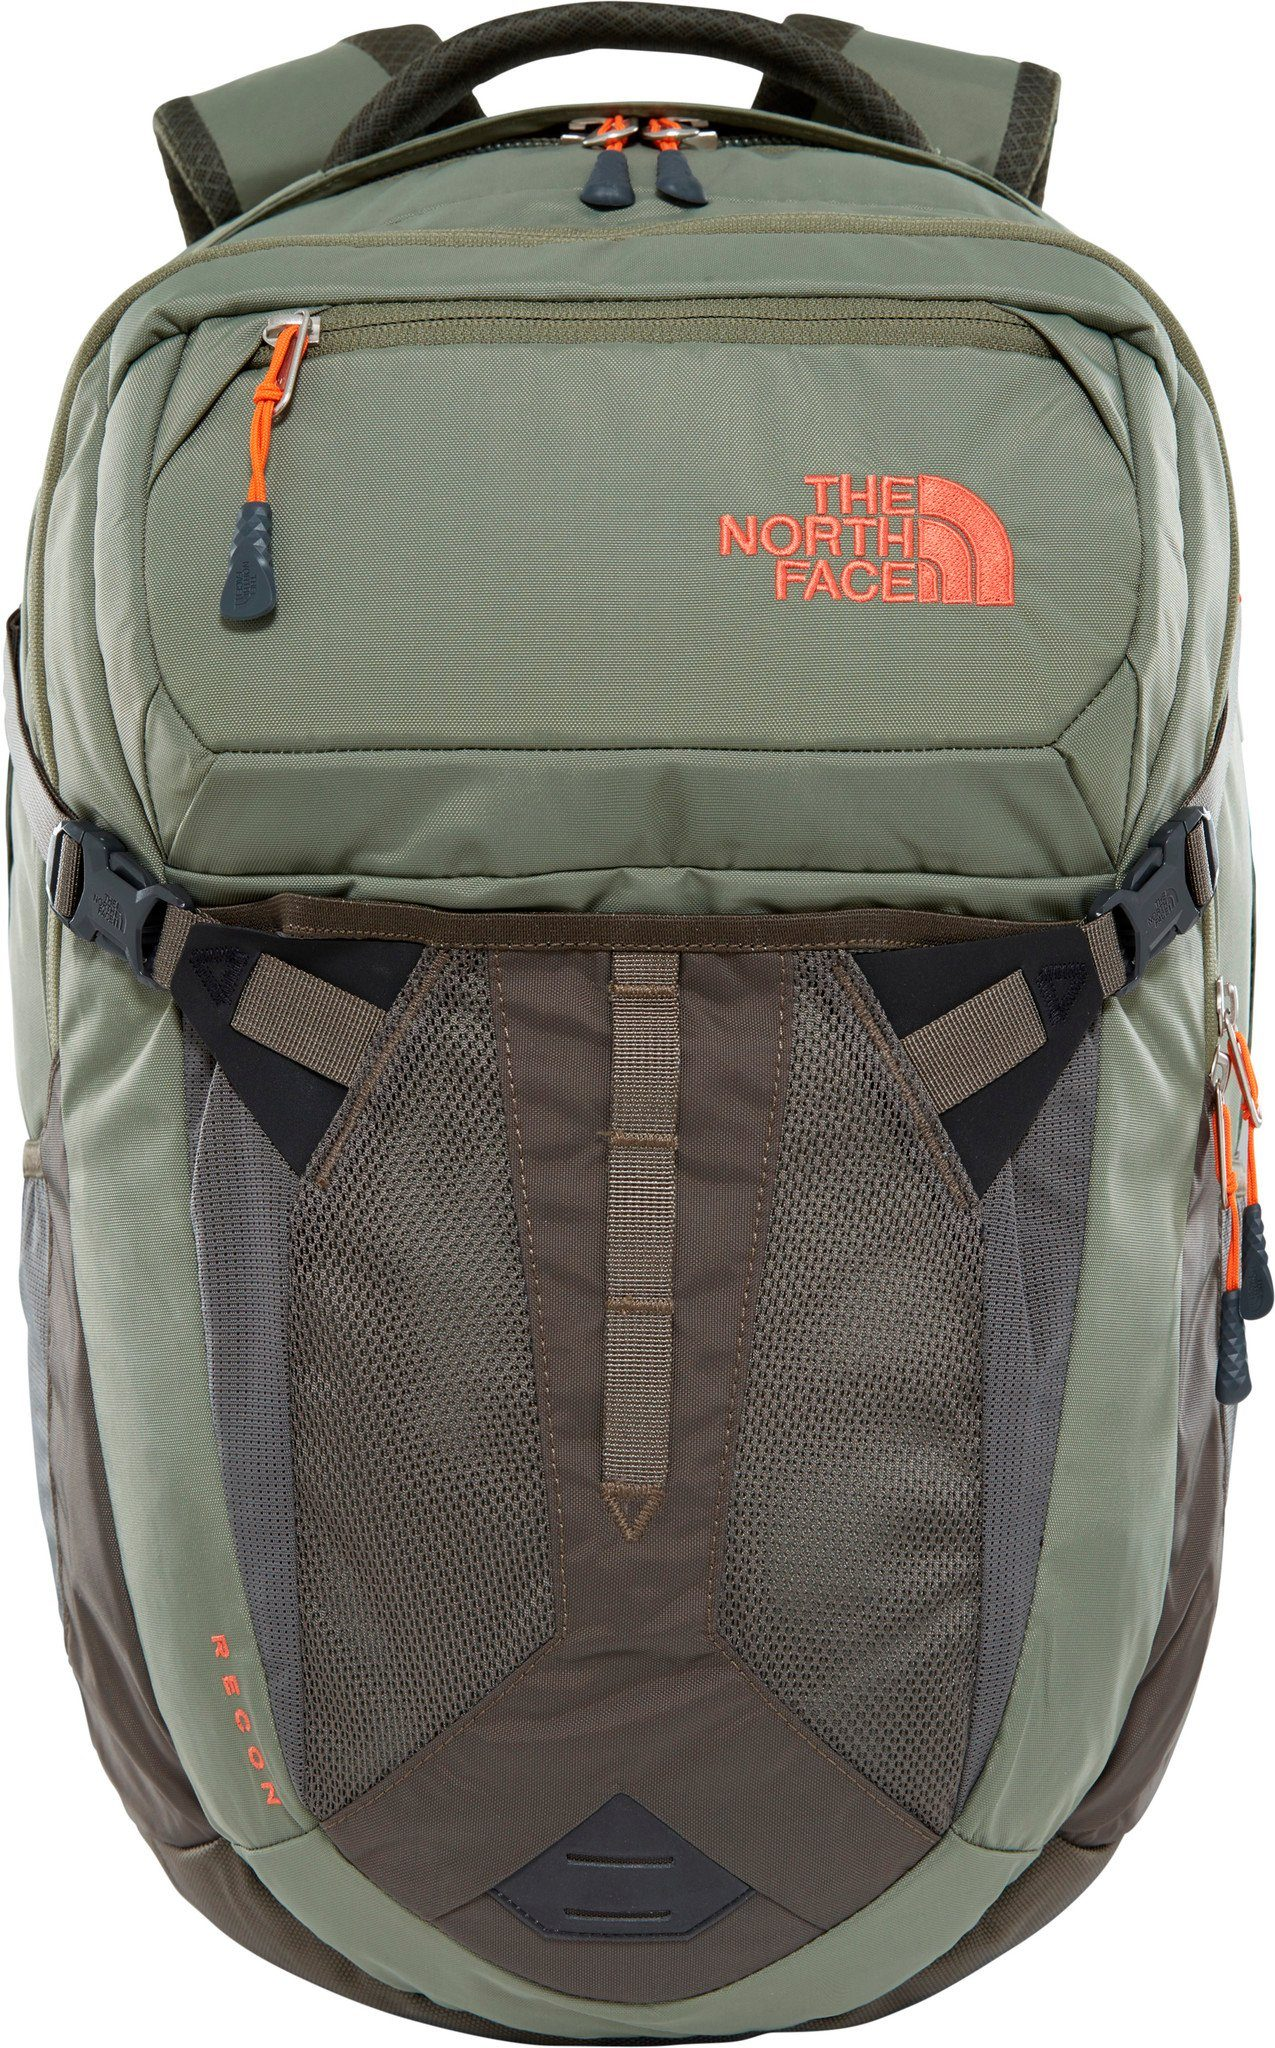 The North Face Wanderrucksack »Recon Backpack«